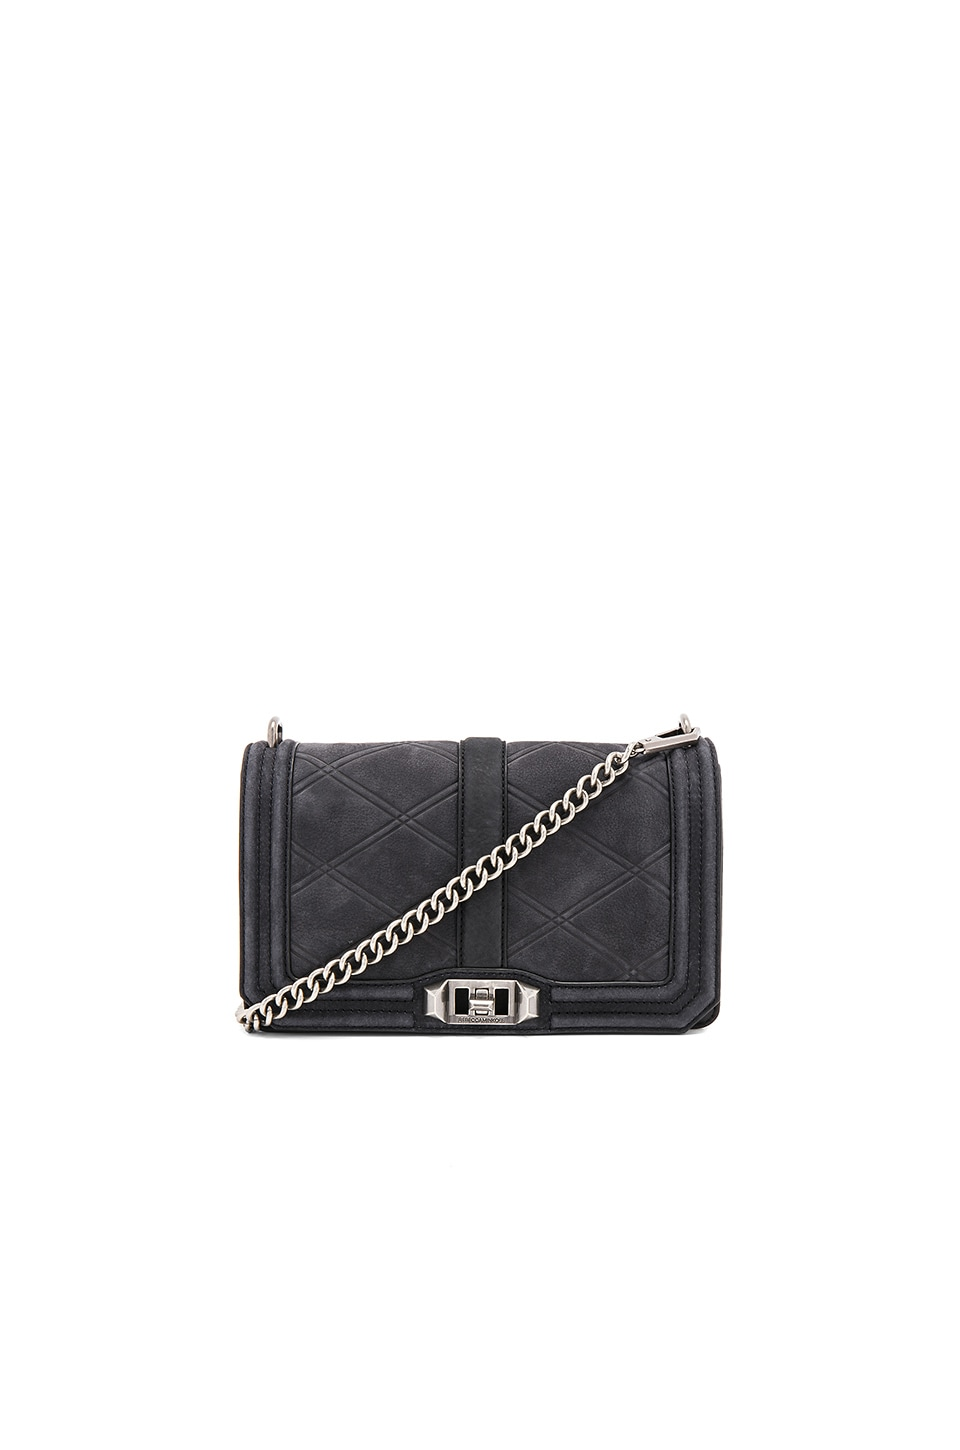 Rebecca Minkoff Embossed Love Crossbody in Black